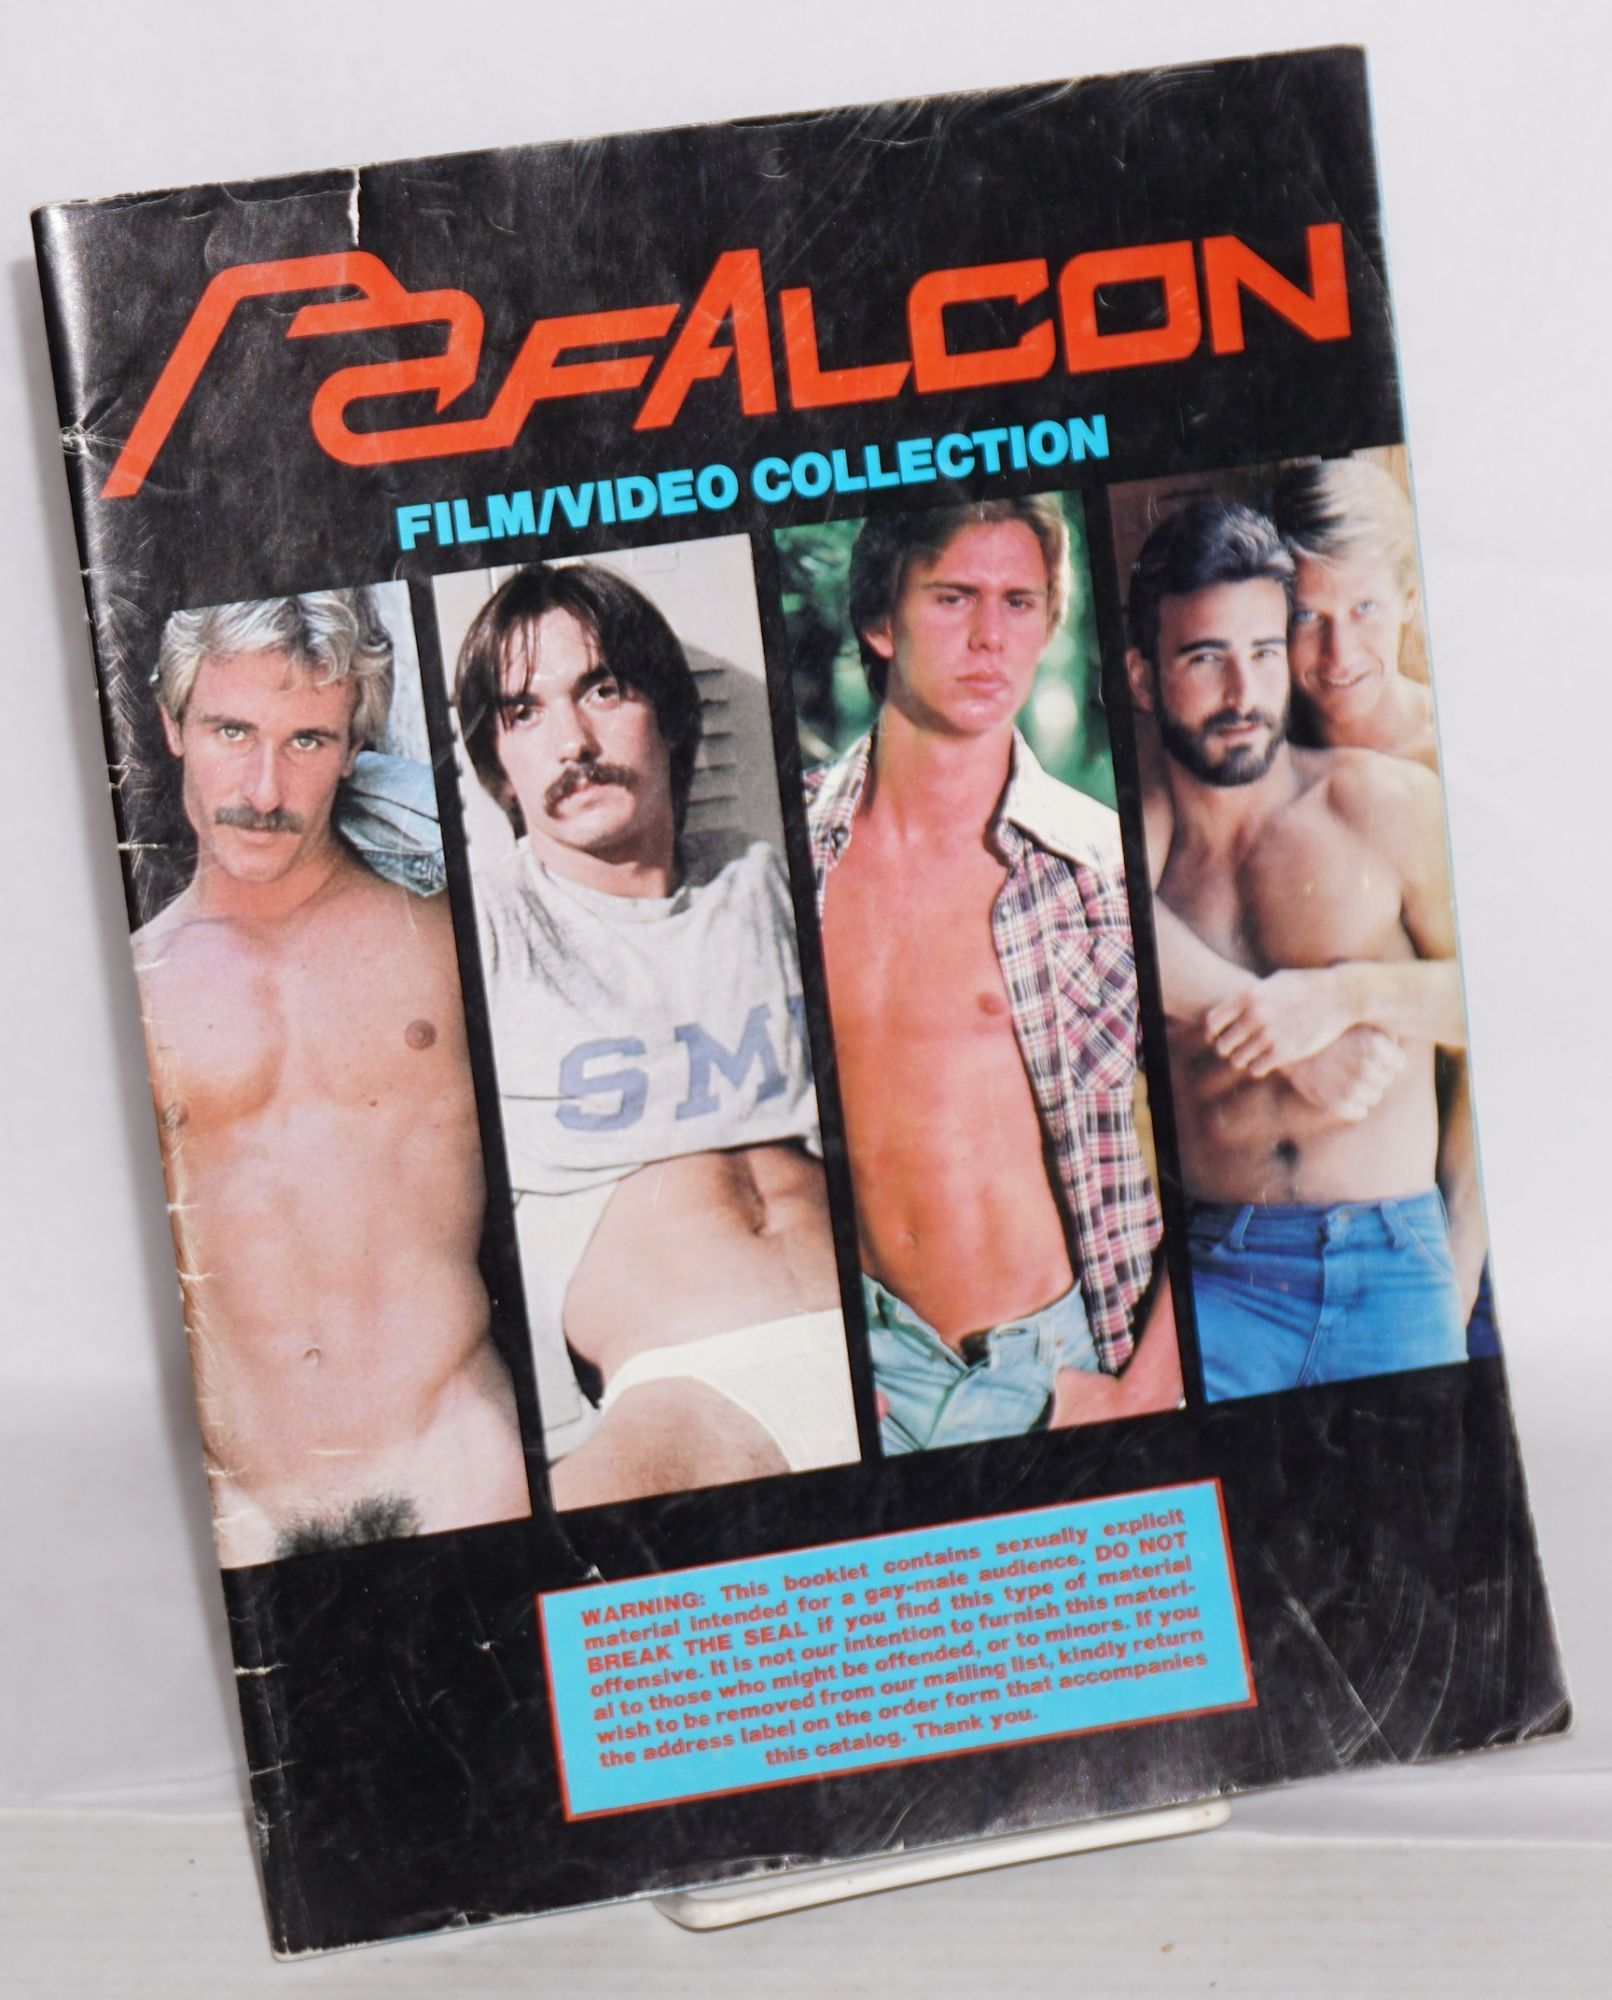 Gay mail order catalogs